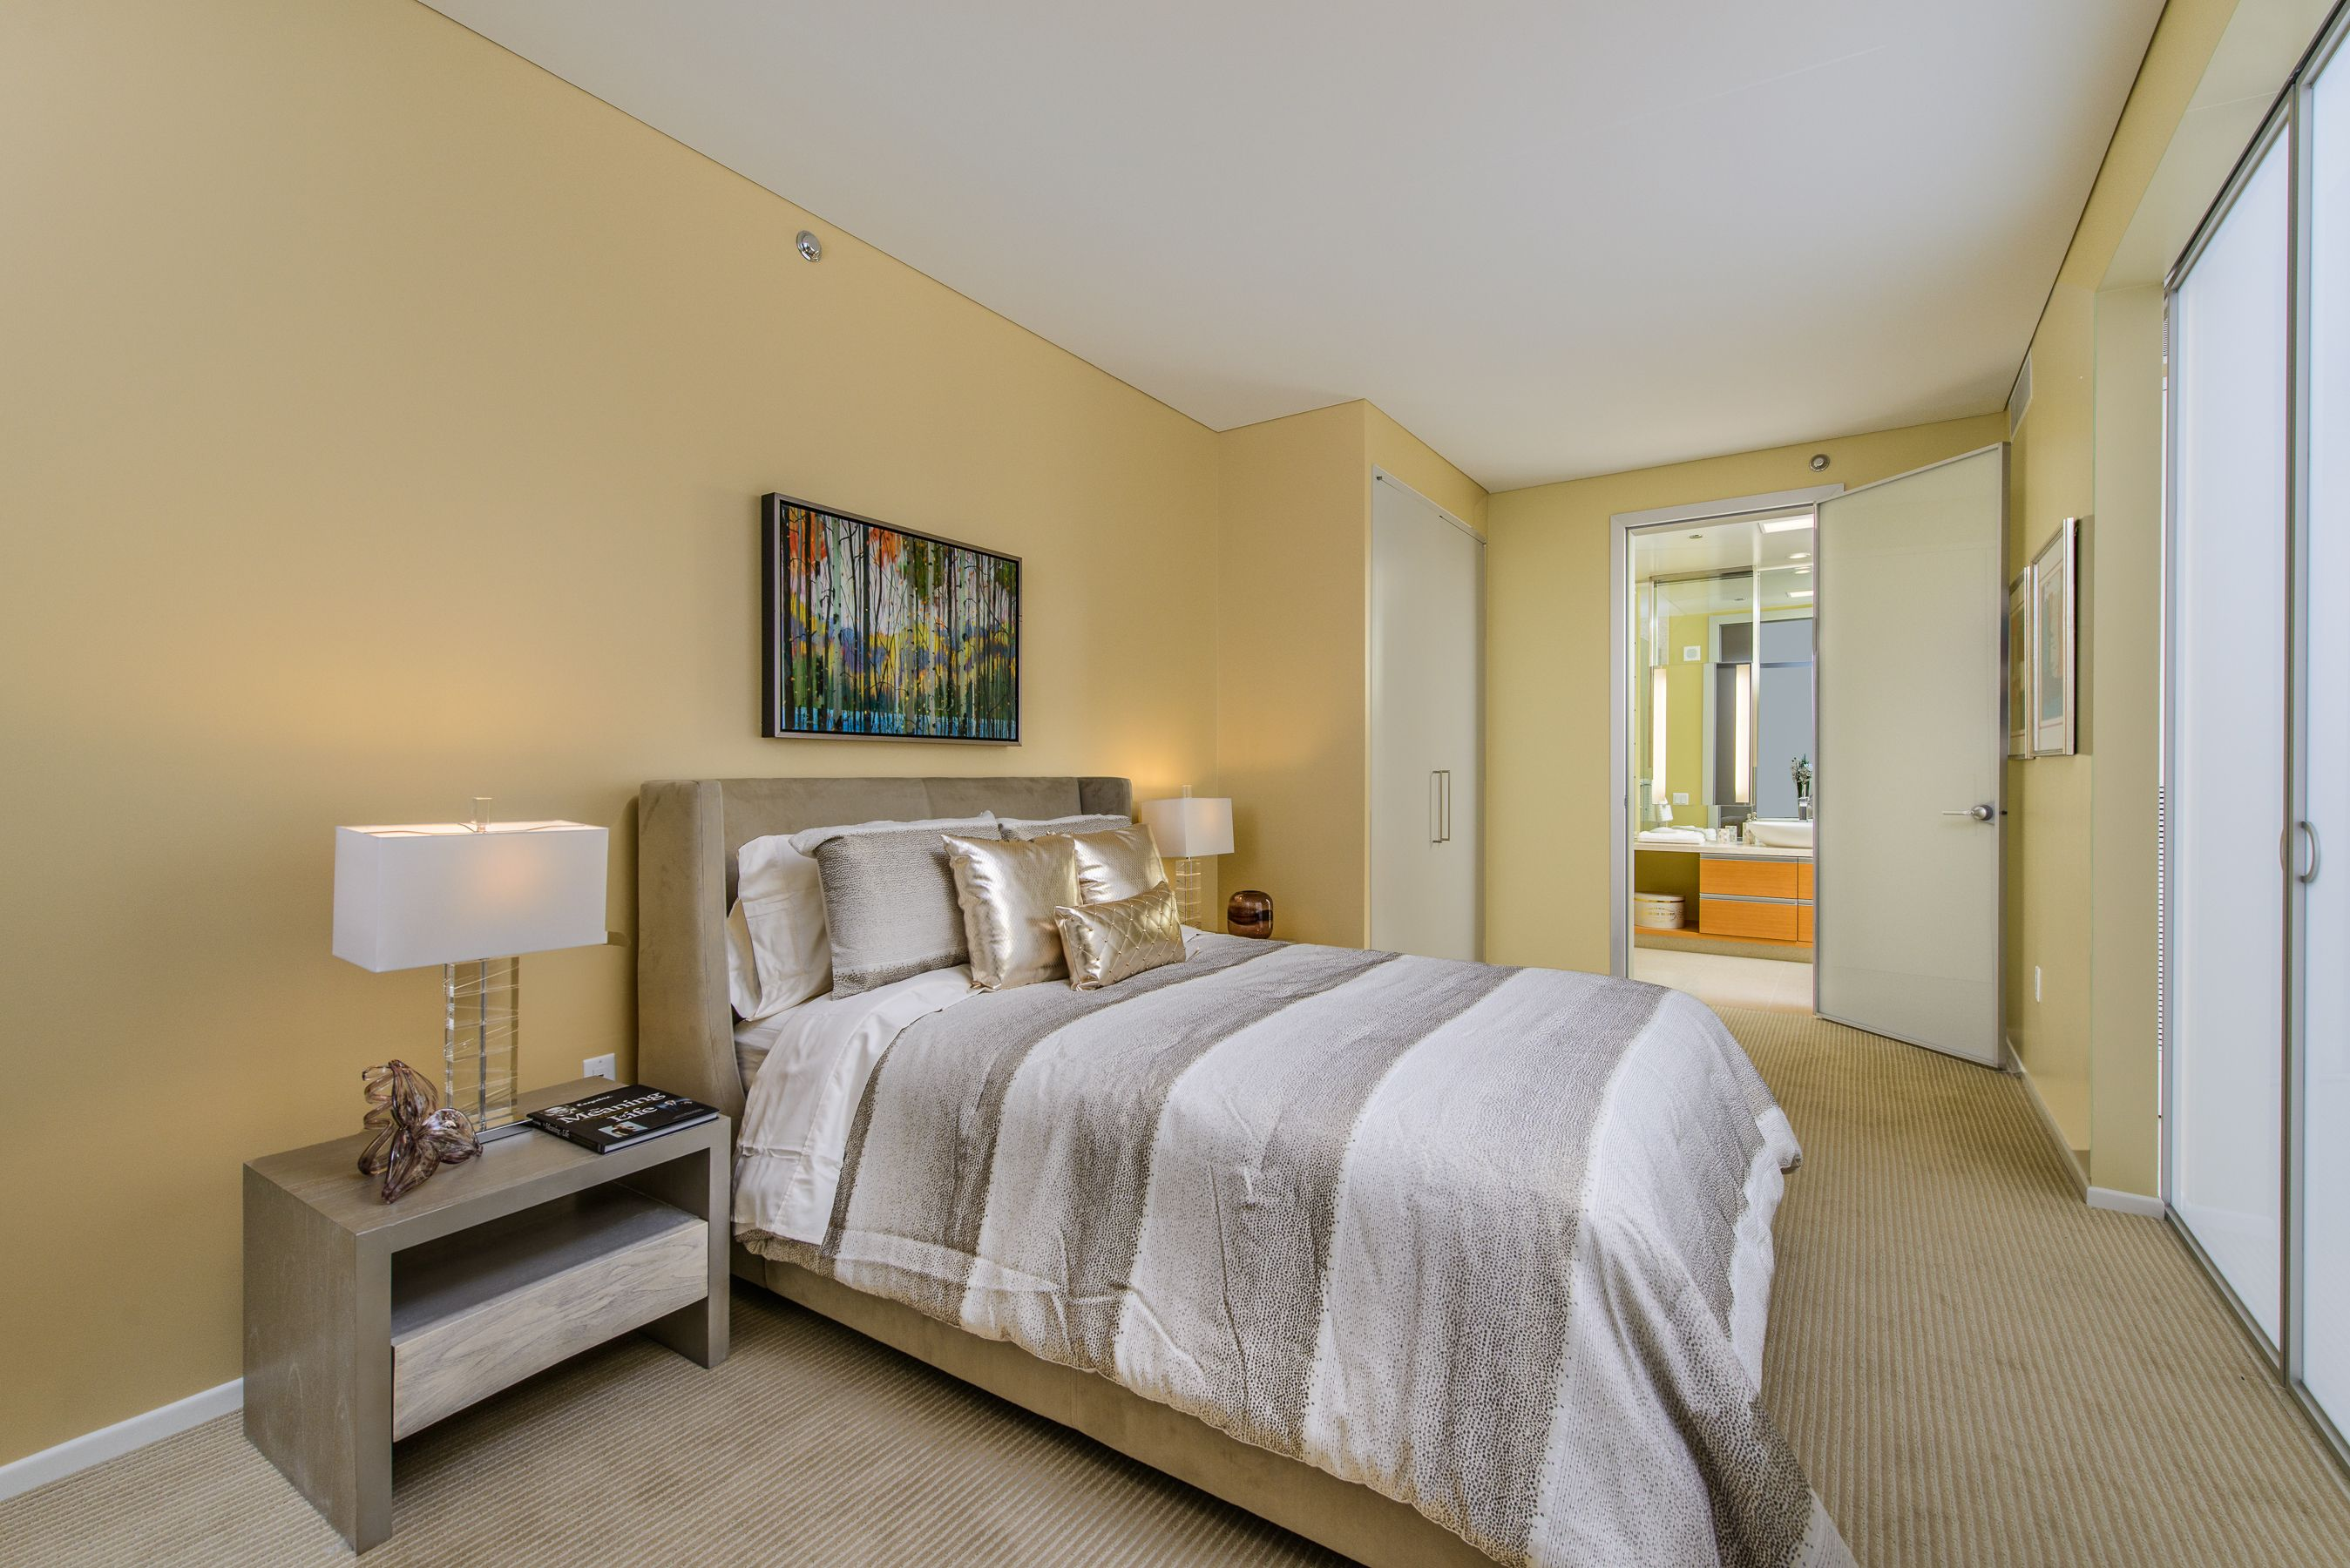 Veer Towers Furnished 1 Bedroom Residence For Sale In The Heart Of Citycenter Lasvegas Realestate Luxurycondos Hi Condos For Sale Luxury Real Estate Condo